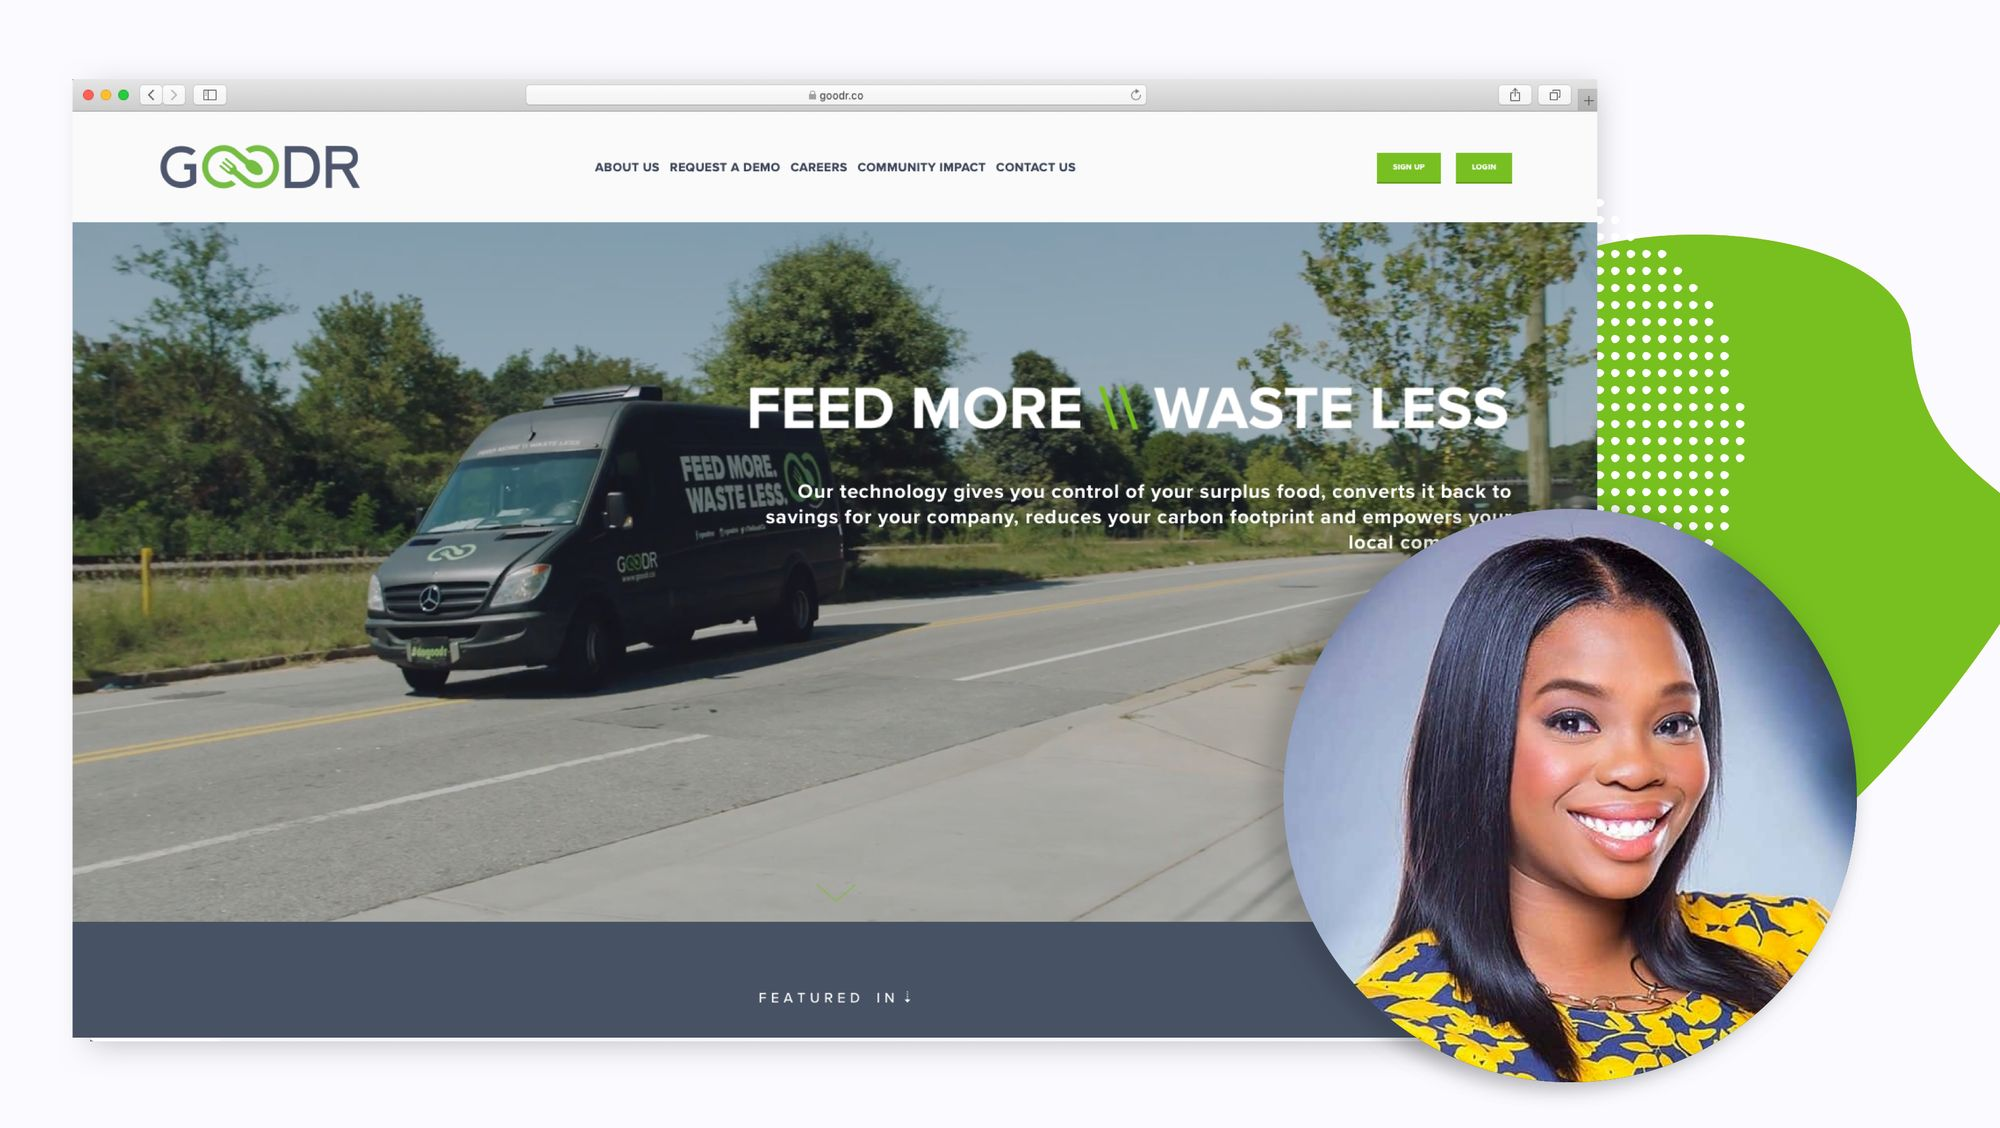 Goodr homepage - feed more, waste less